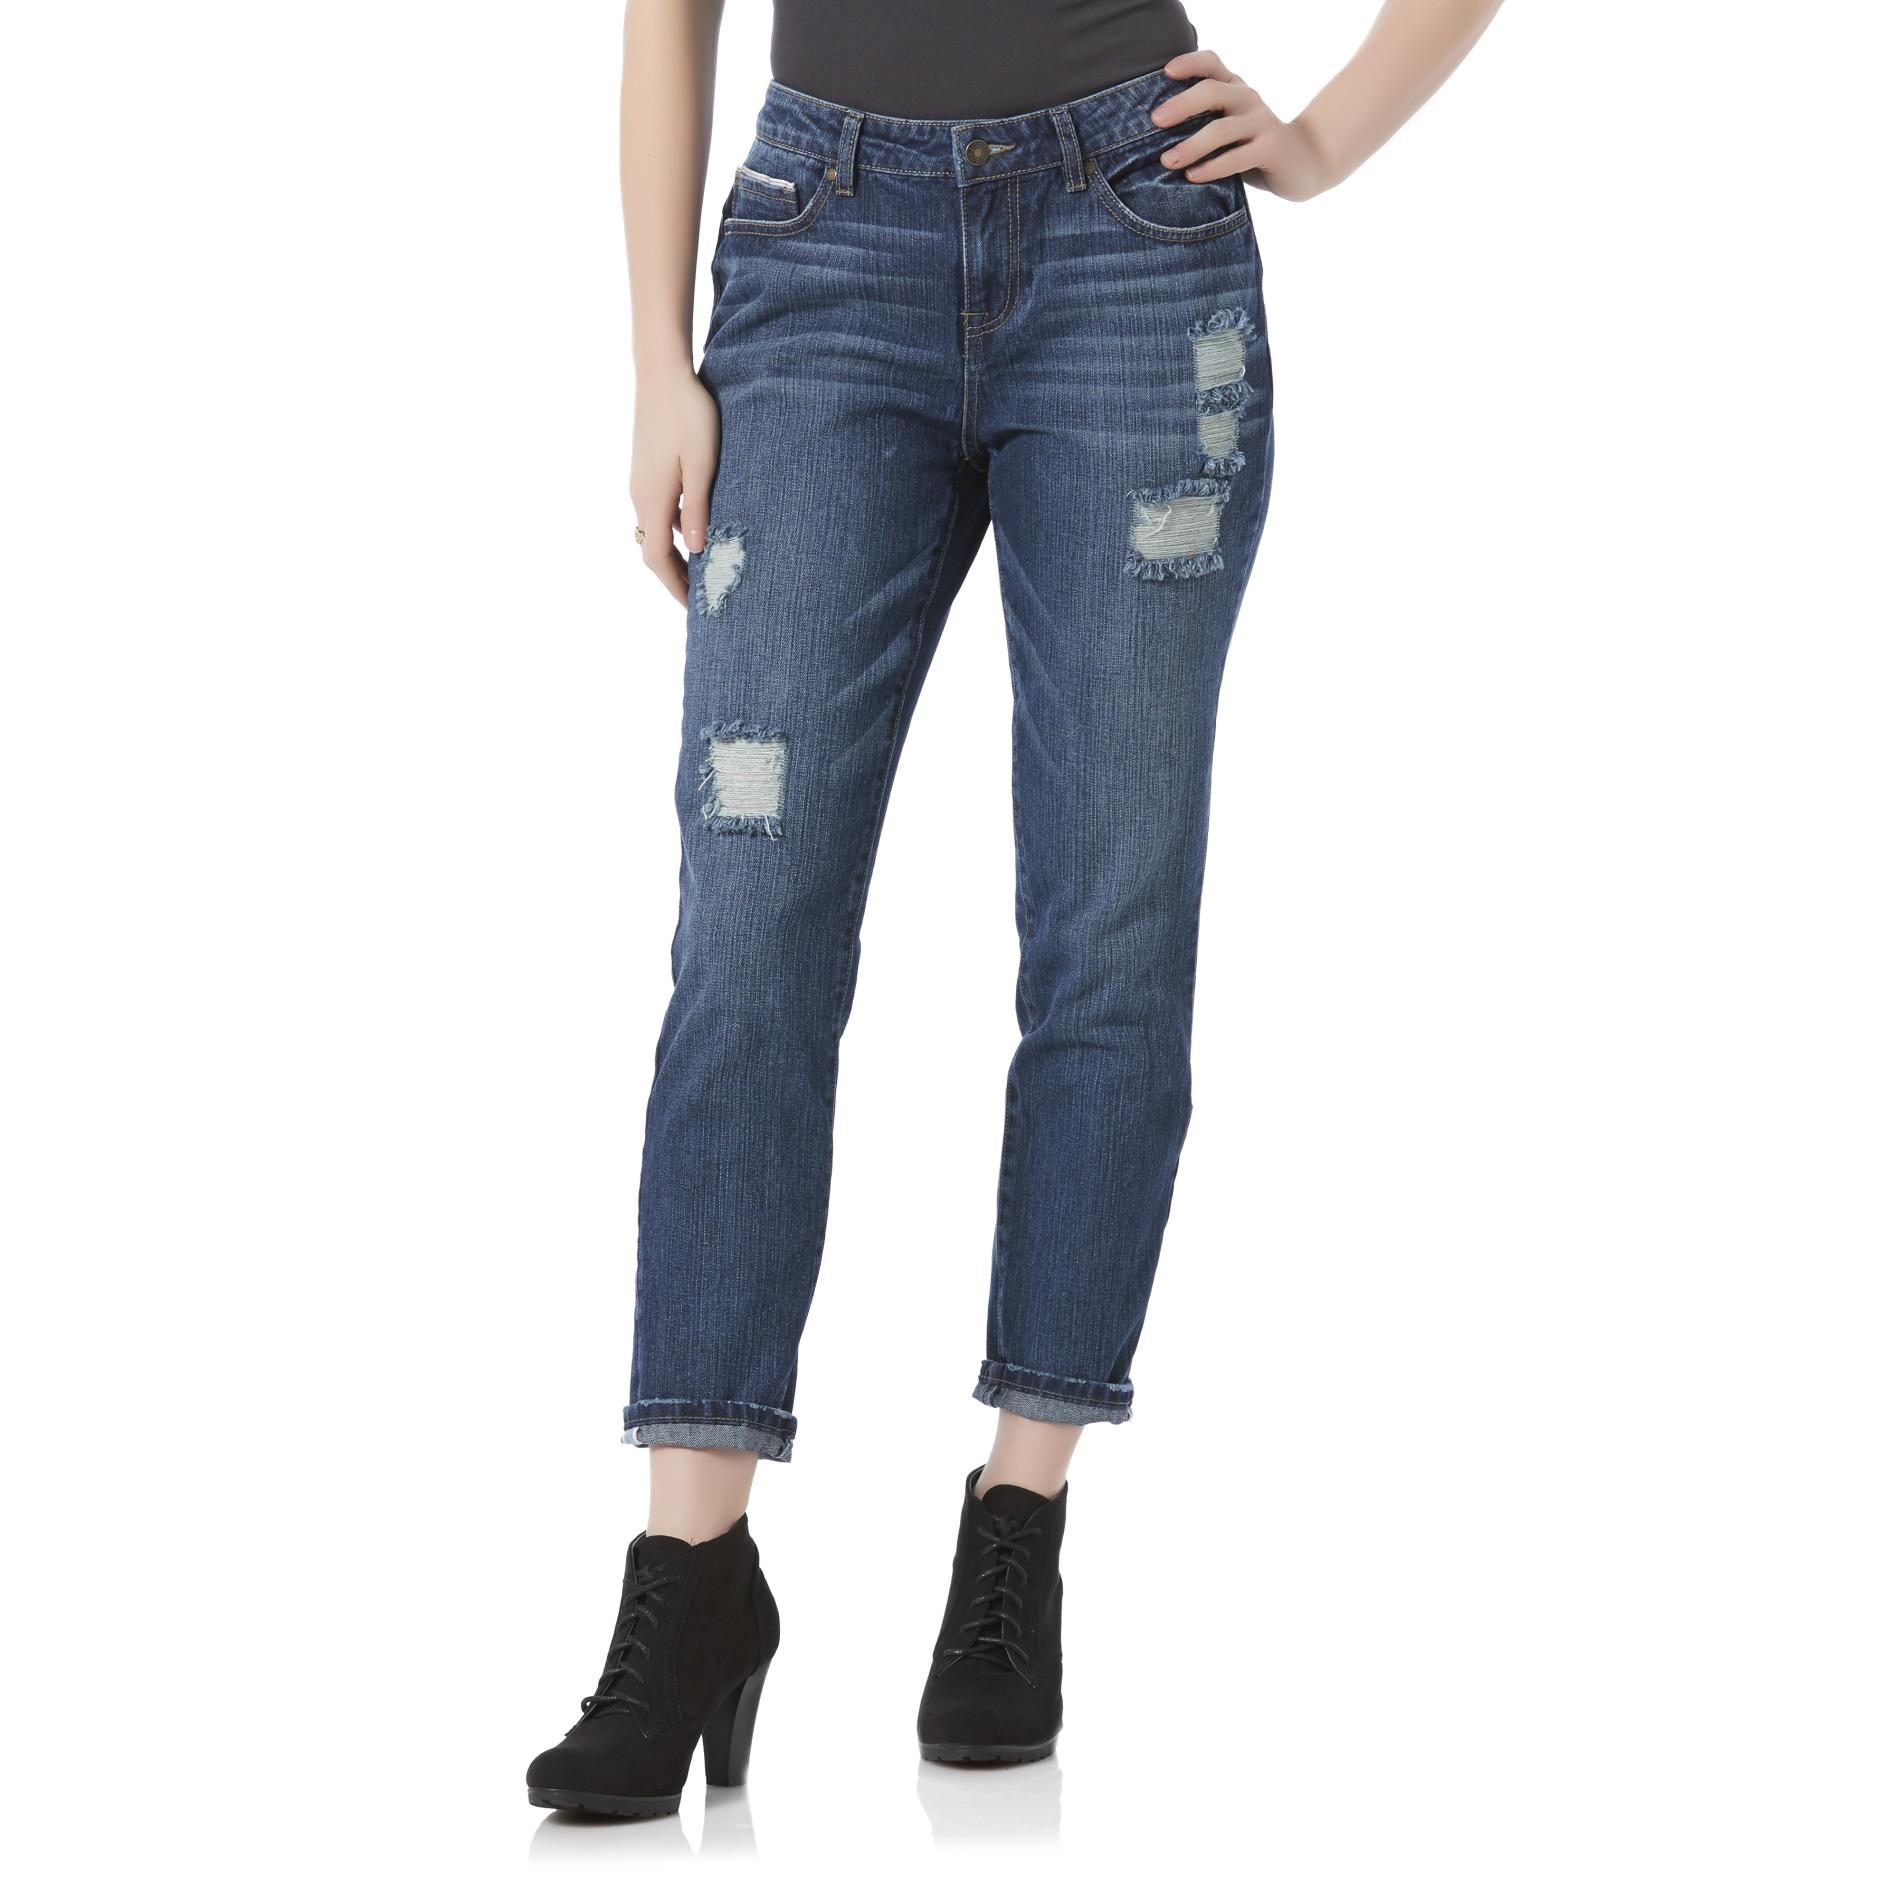 Canyon River Blues Women' Destructed Jeans - Sears